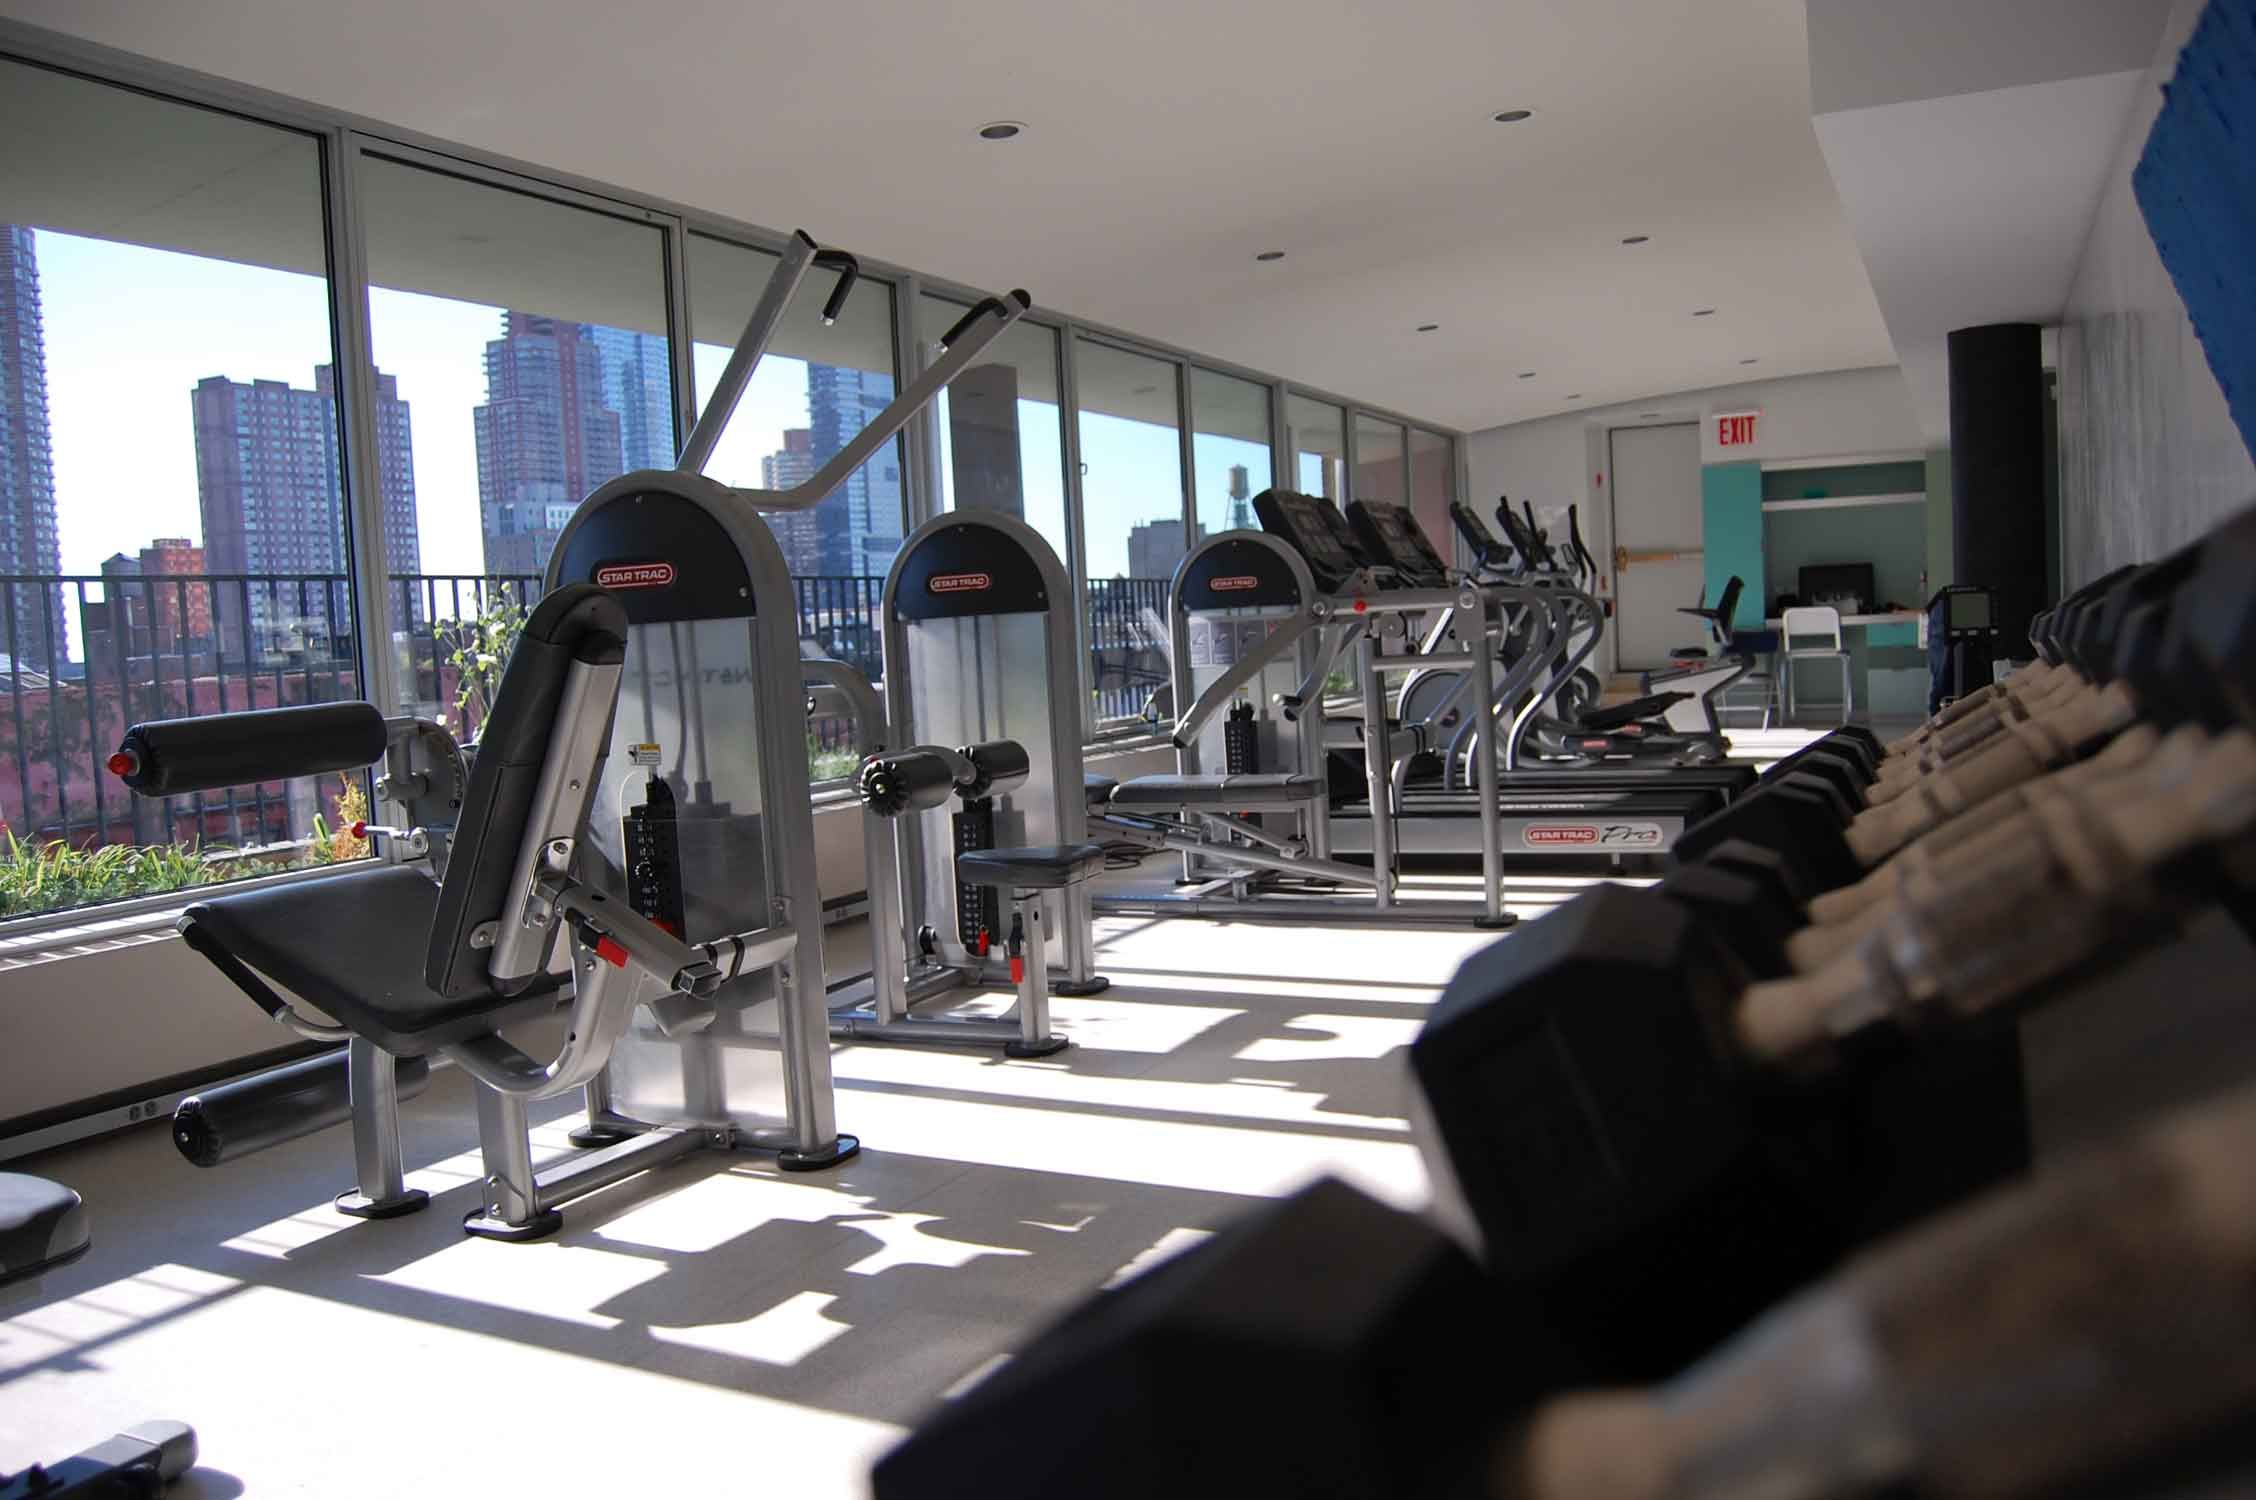 Home fitness gym equipment repair and service